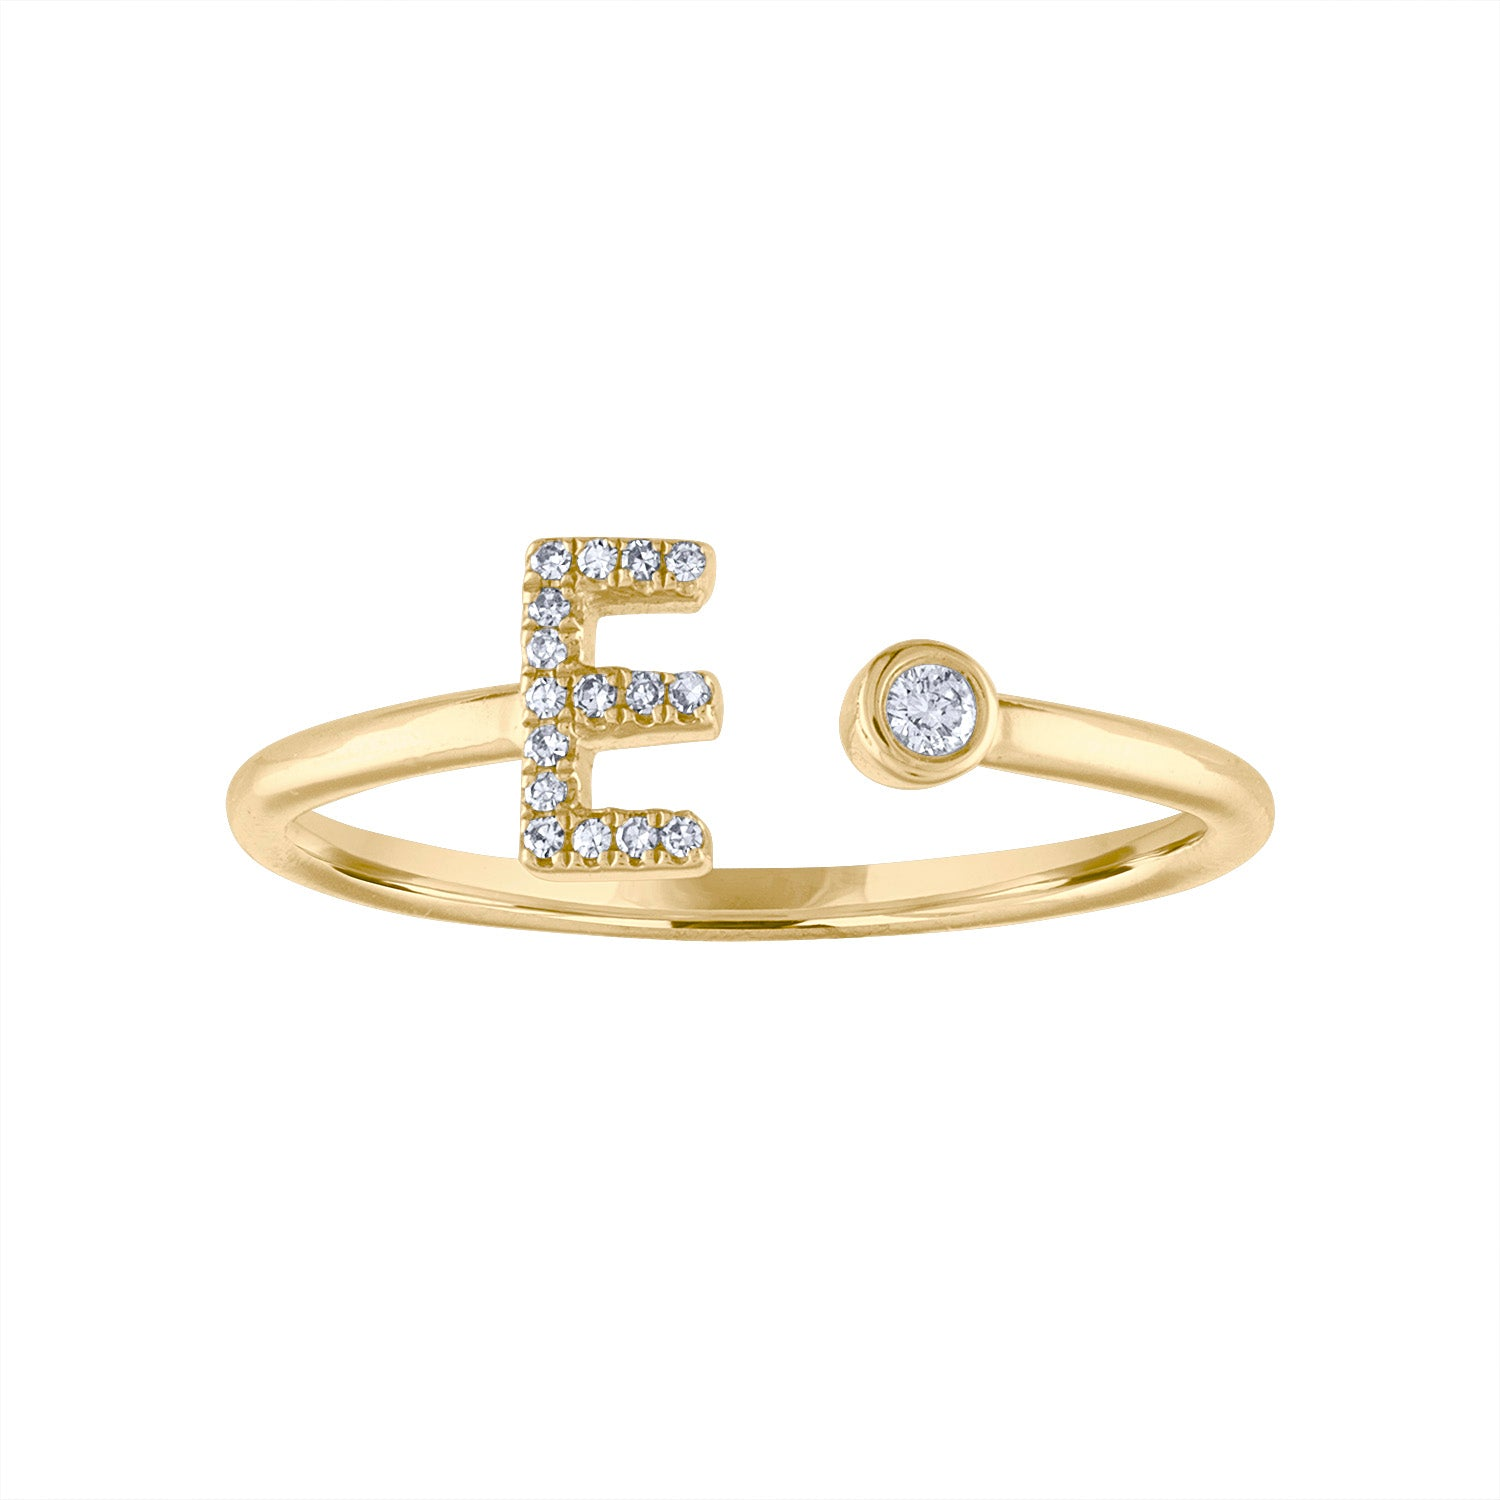 14KT GOLD DIAMOND INITIAL & BEZEL SET CUFF RING